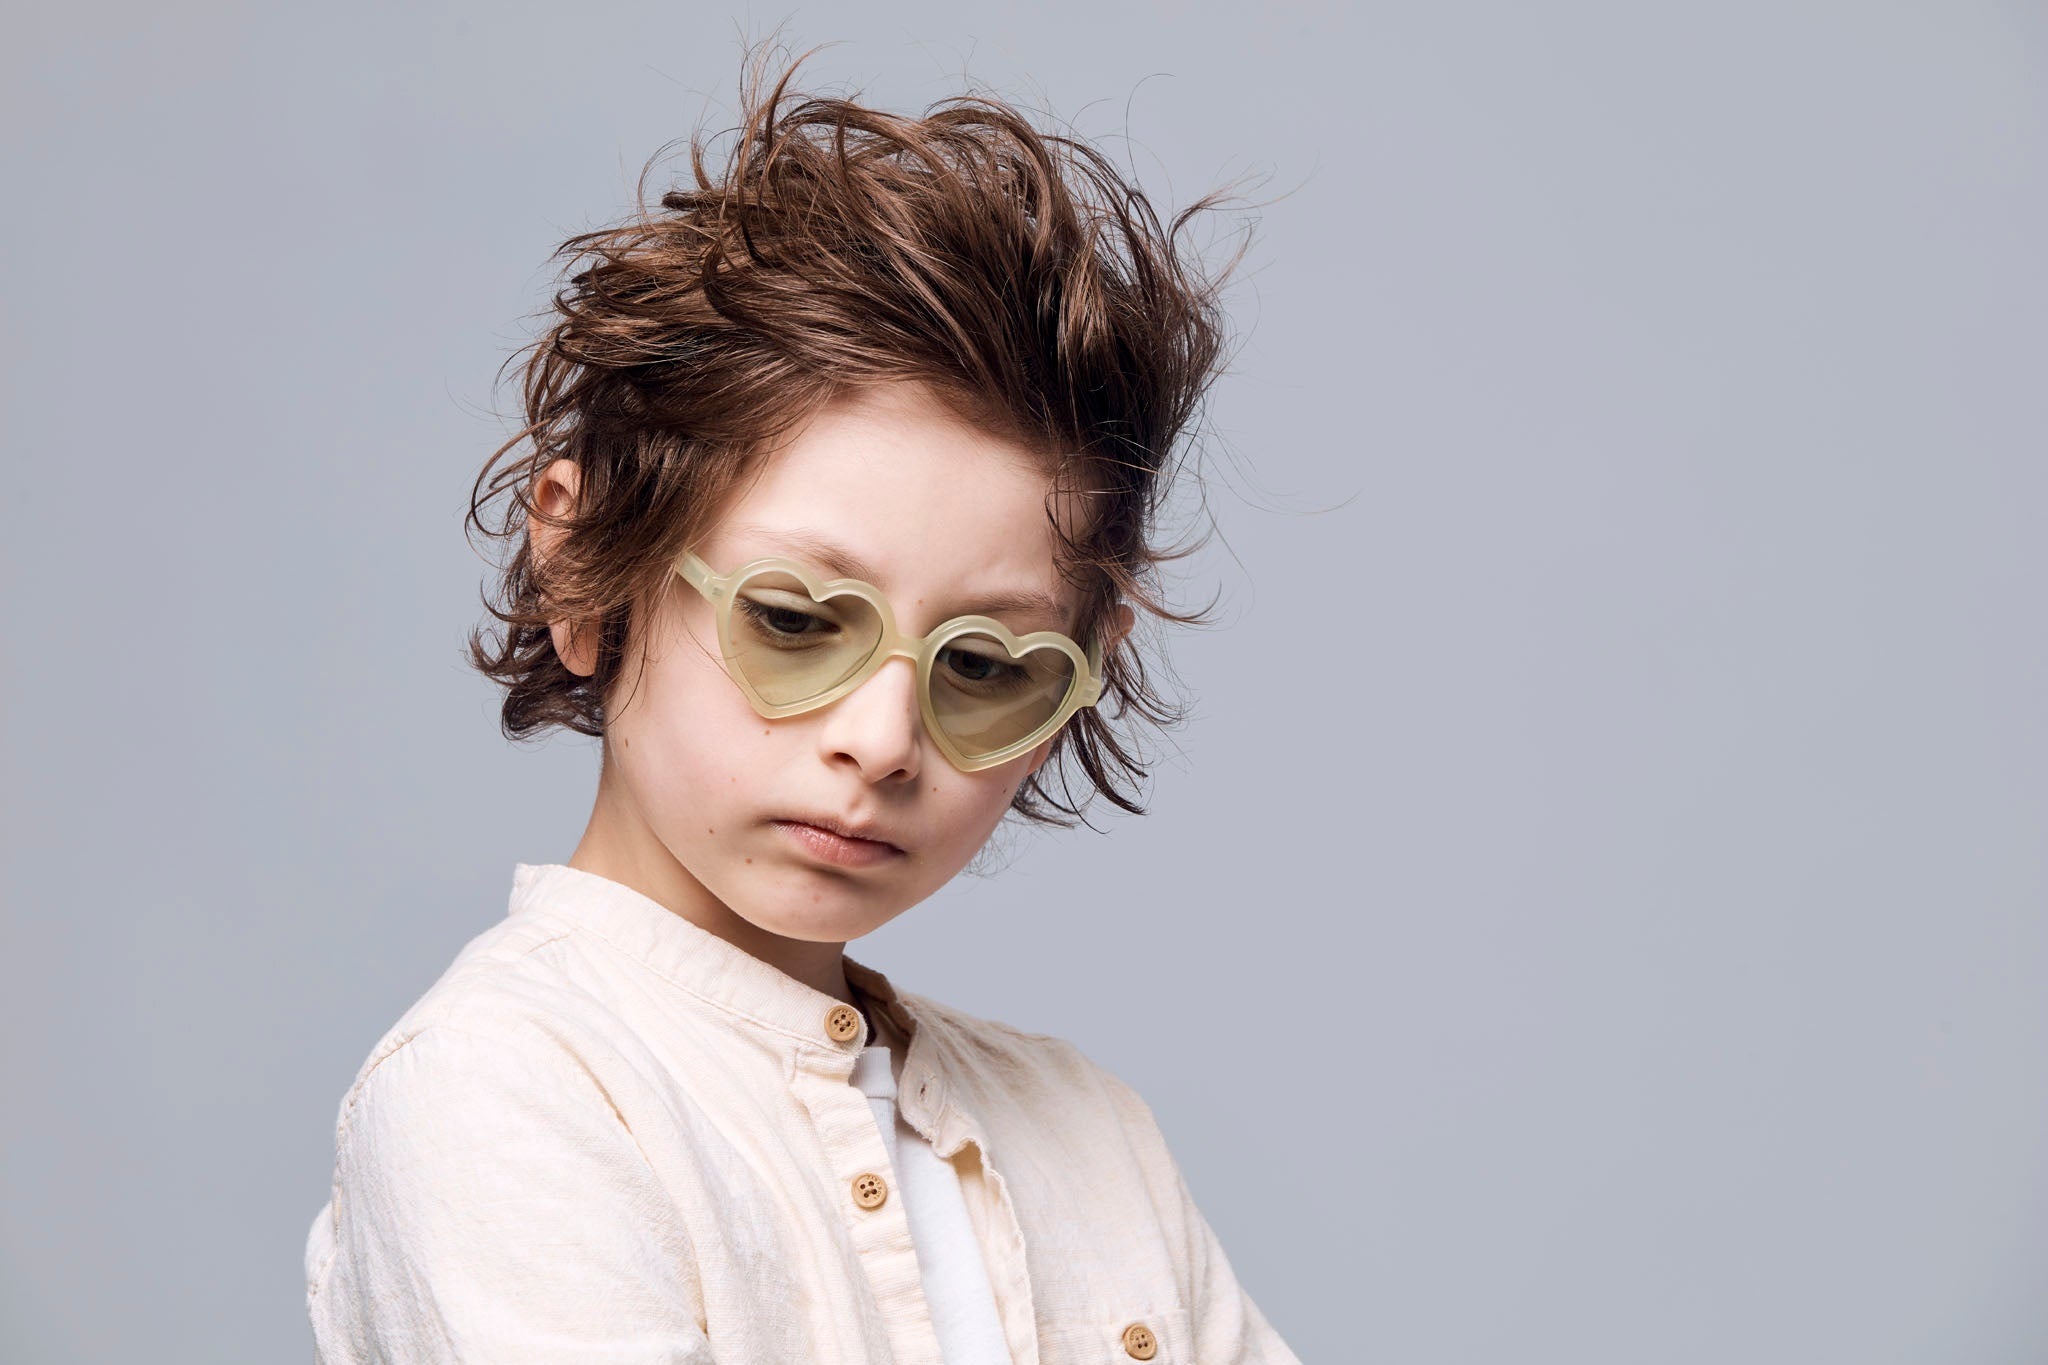 Sons_and_Daughters_Eyewear_Campaign_2019_Childrens_Kids_Sunglasses_Lola